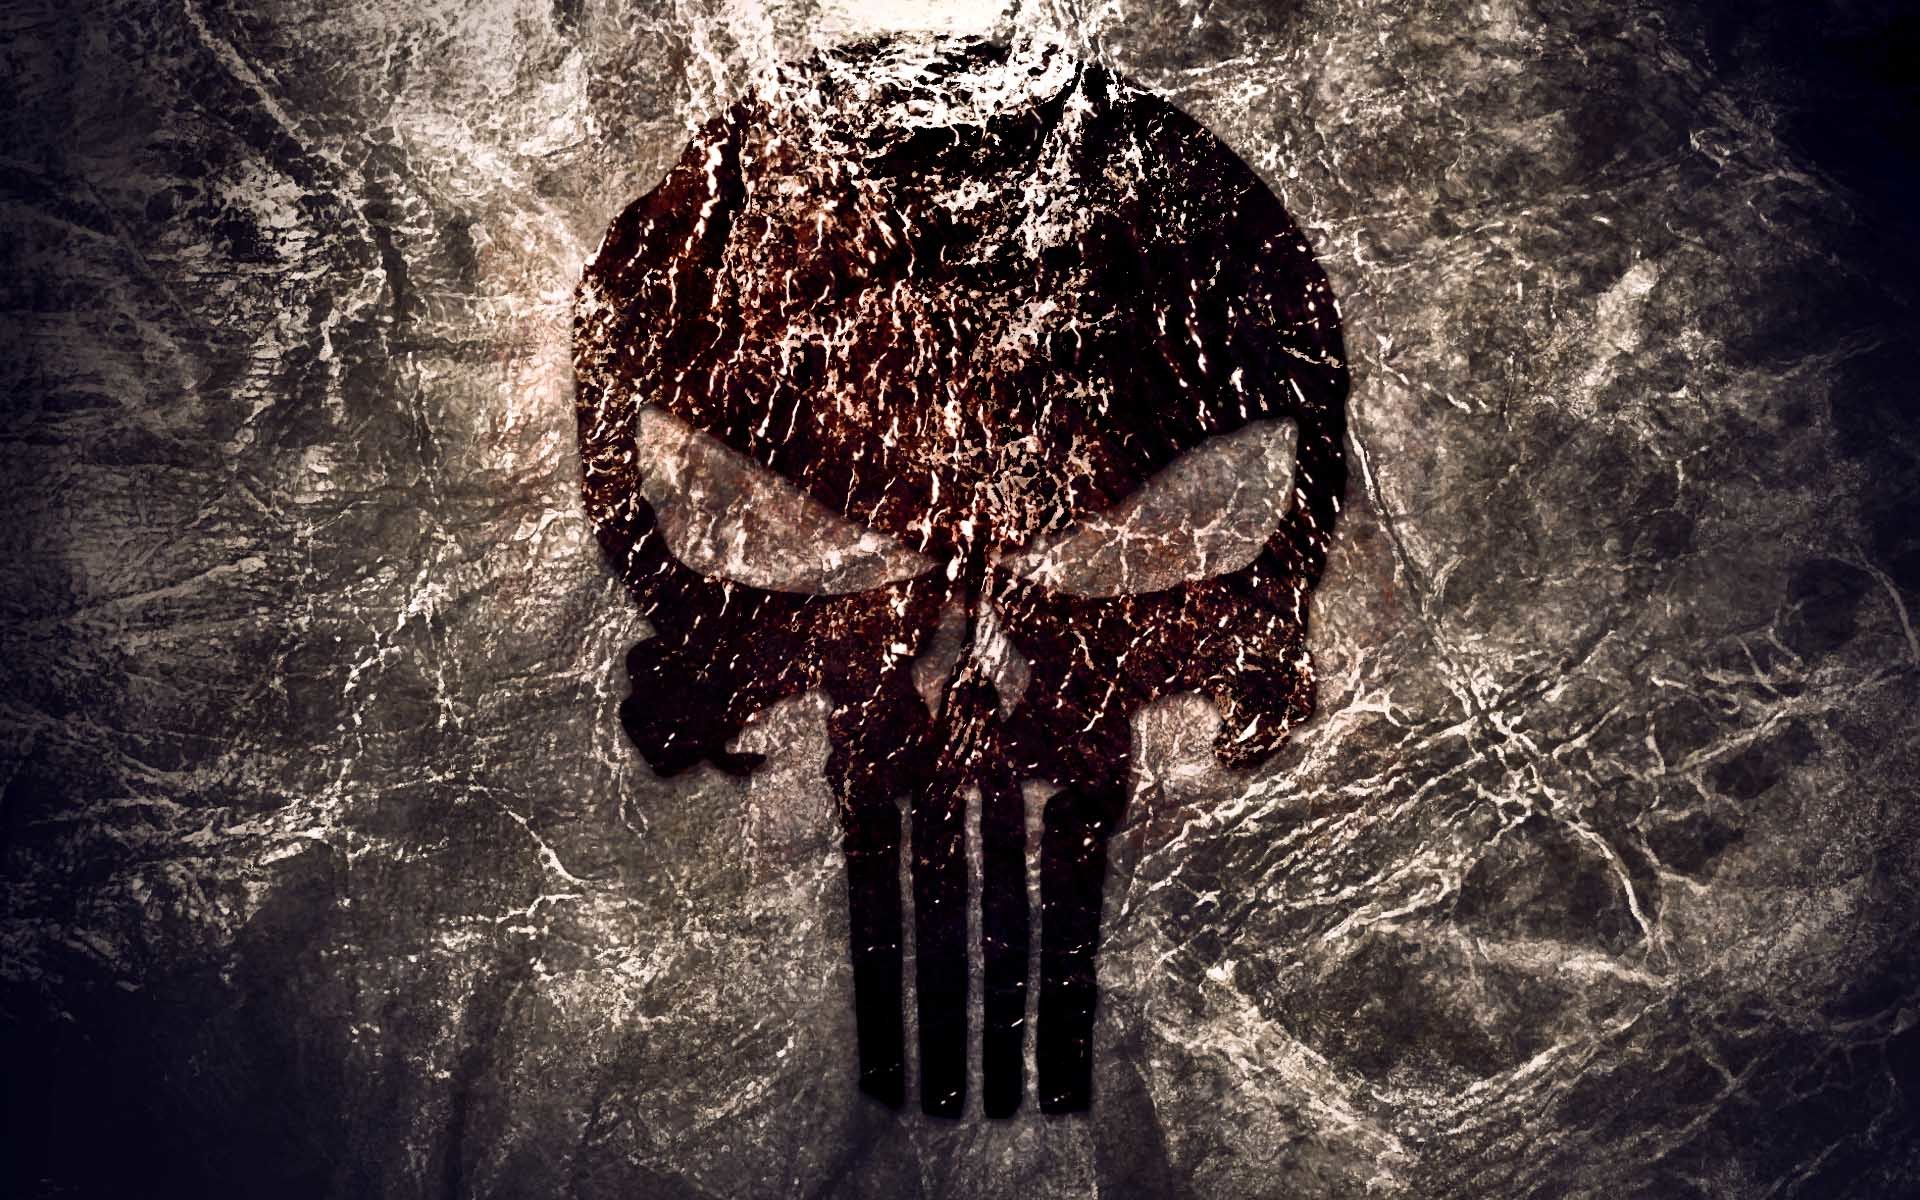 1920x1200 The Punisher Texture Logo Wallpaper Download Wallpaper from .